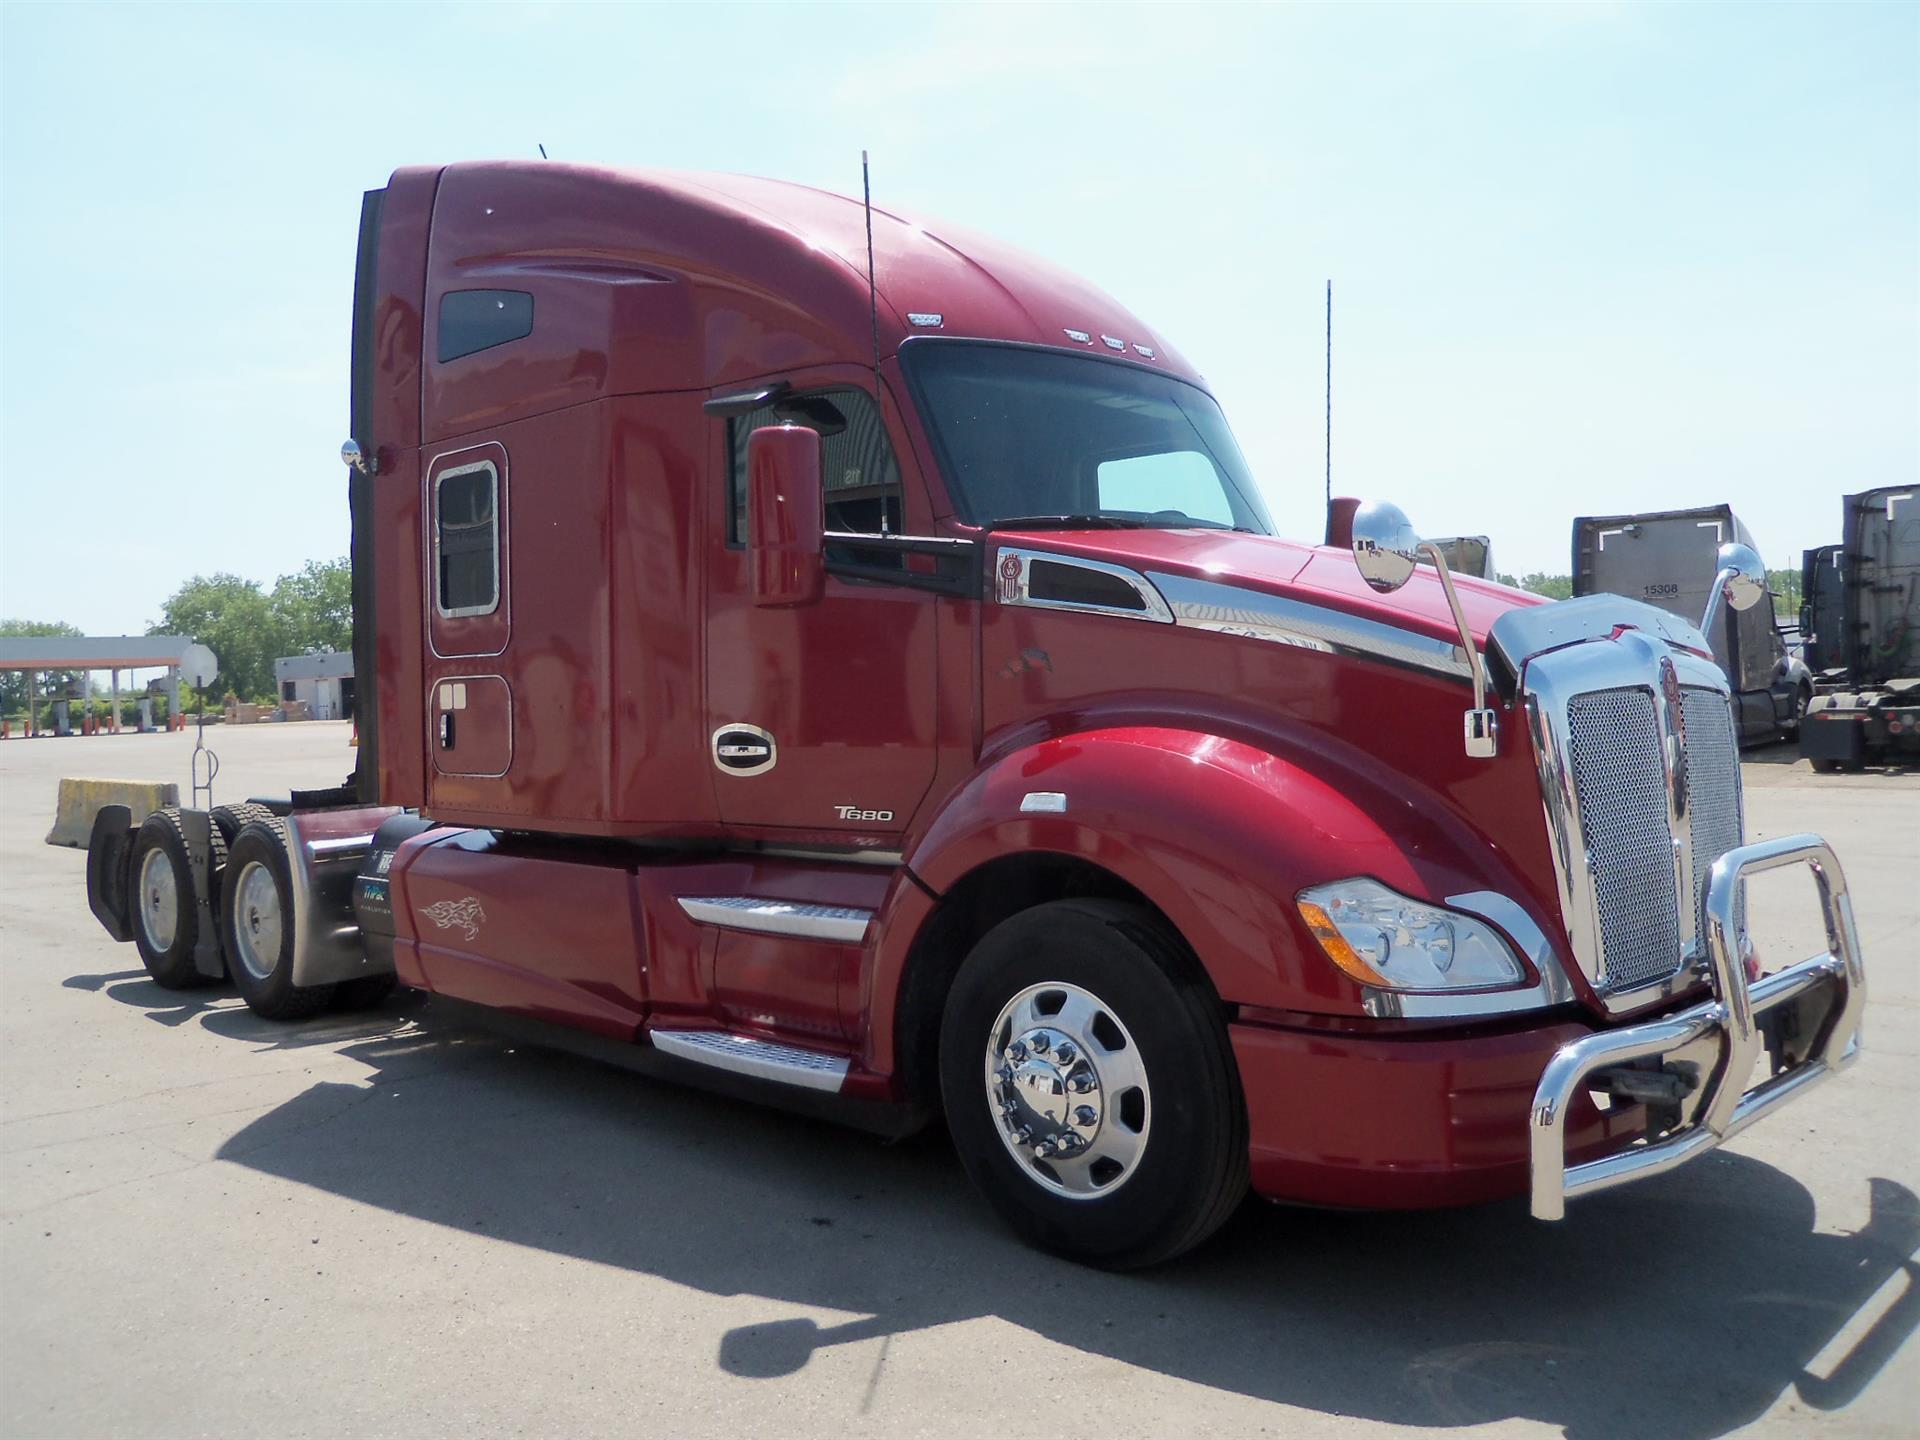 USED 2015 KENWORTH T680 SLEEPER TRUCK #125409